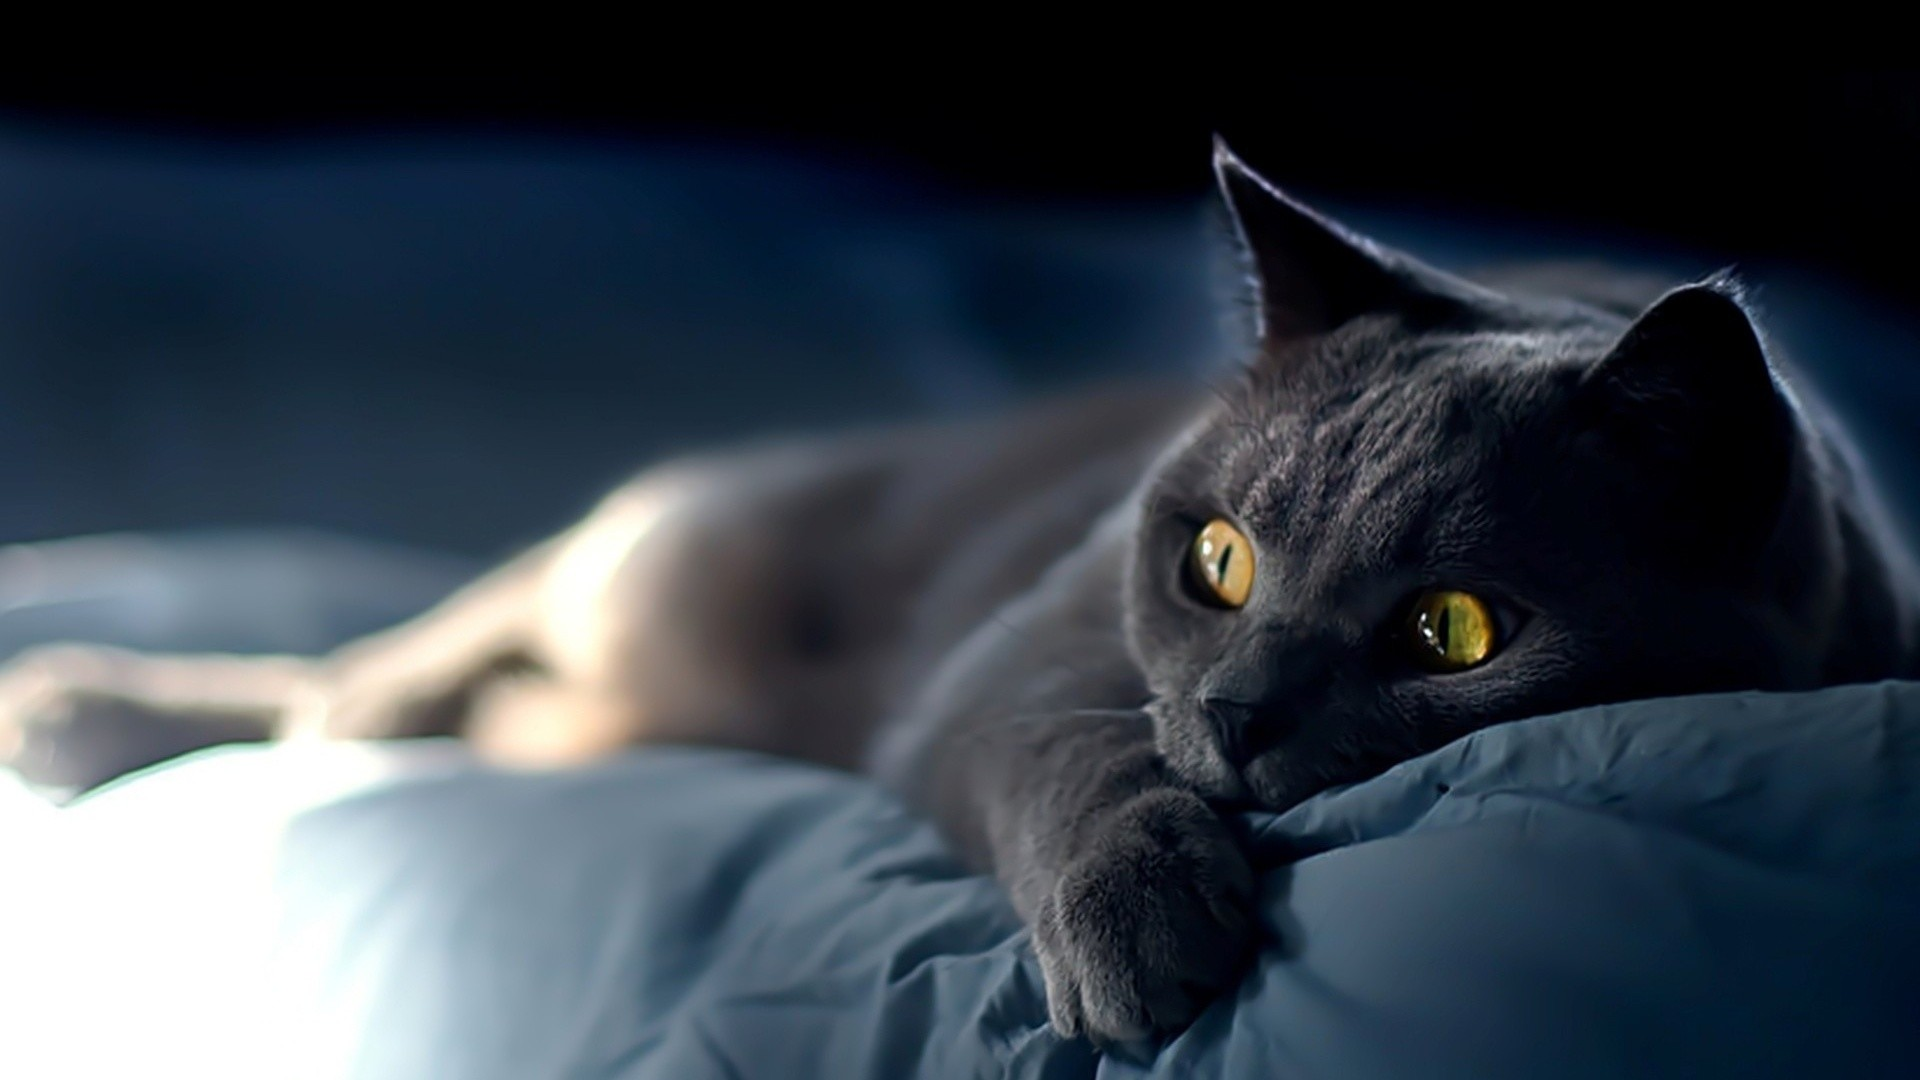 Cat on blue sheets. How to set wallpaper on your desktop? Click  the download link from above and set the wallpaper on the desktop from your  OS.